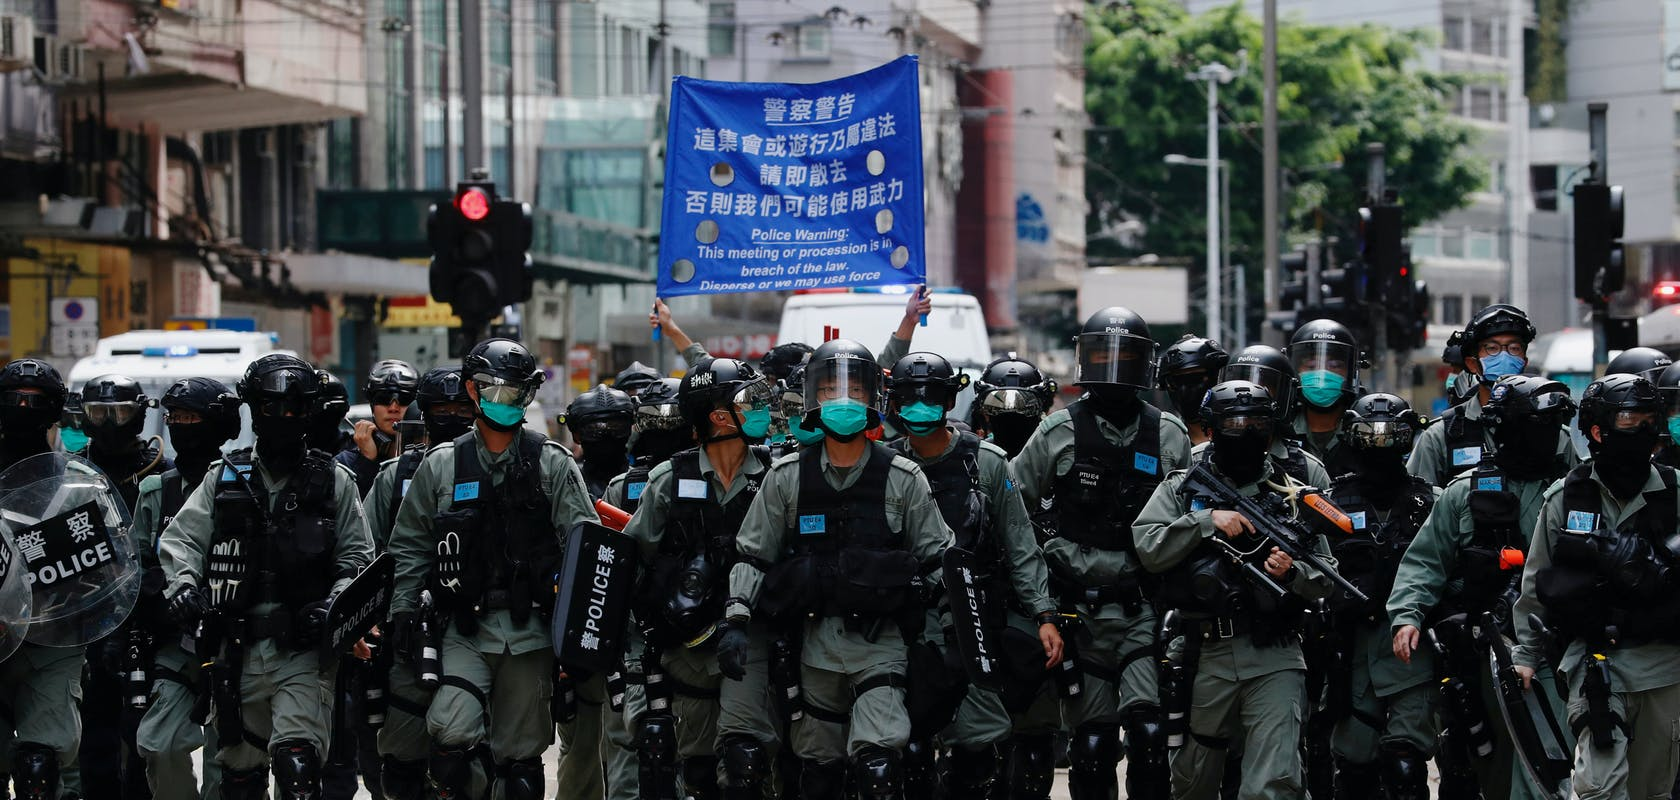 c2a95bfc-e769-47b4-87c0-a01231aae2e9_Hongkong-police.JPG?auto=compress,format&rect=0,210,4795,2283&w=1680&h=800